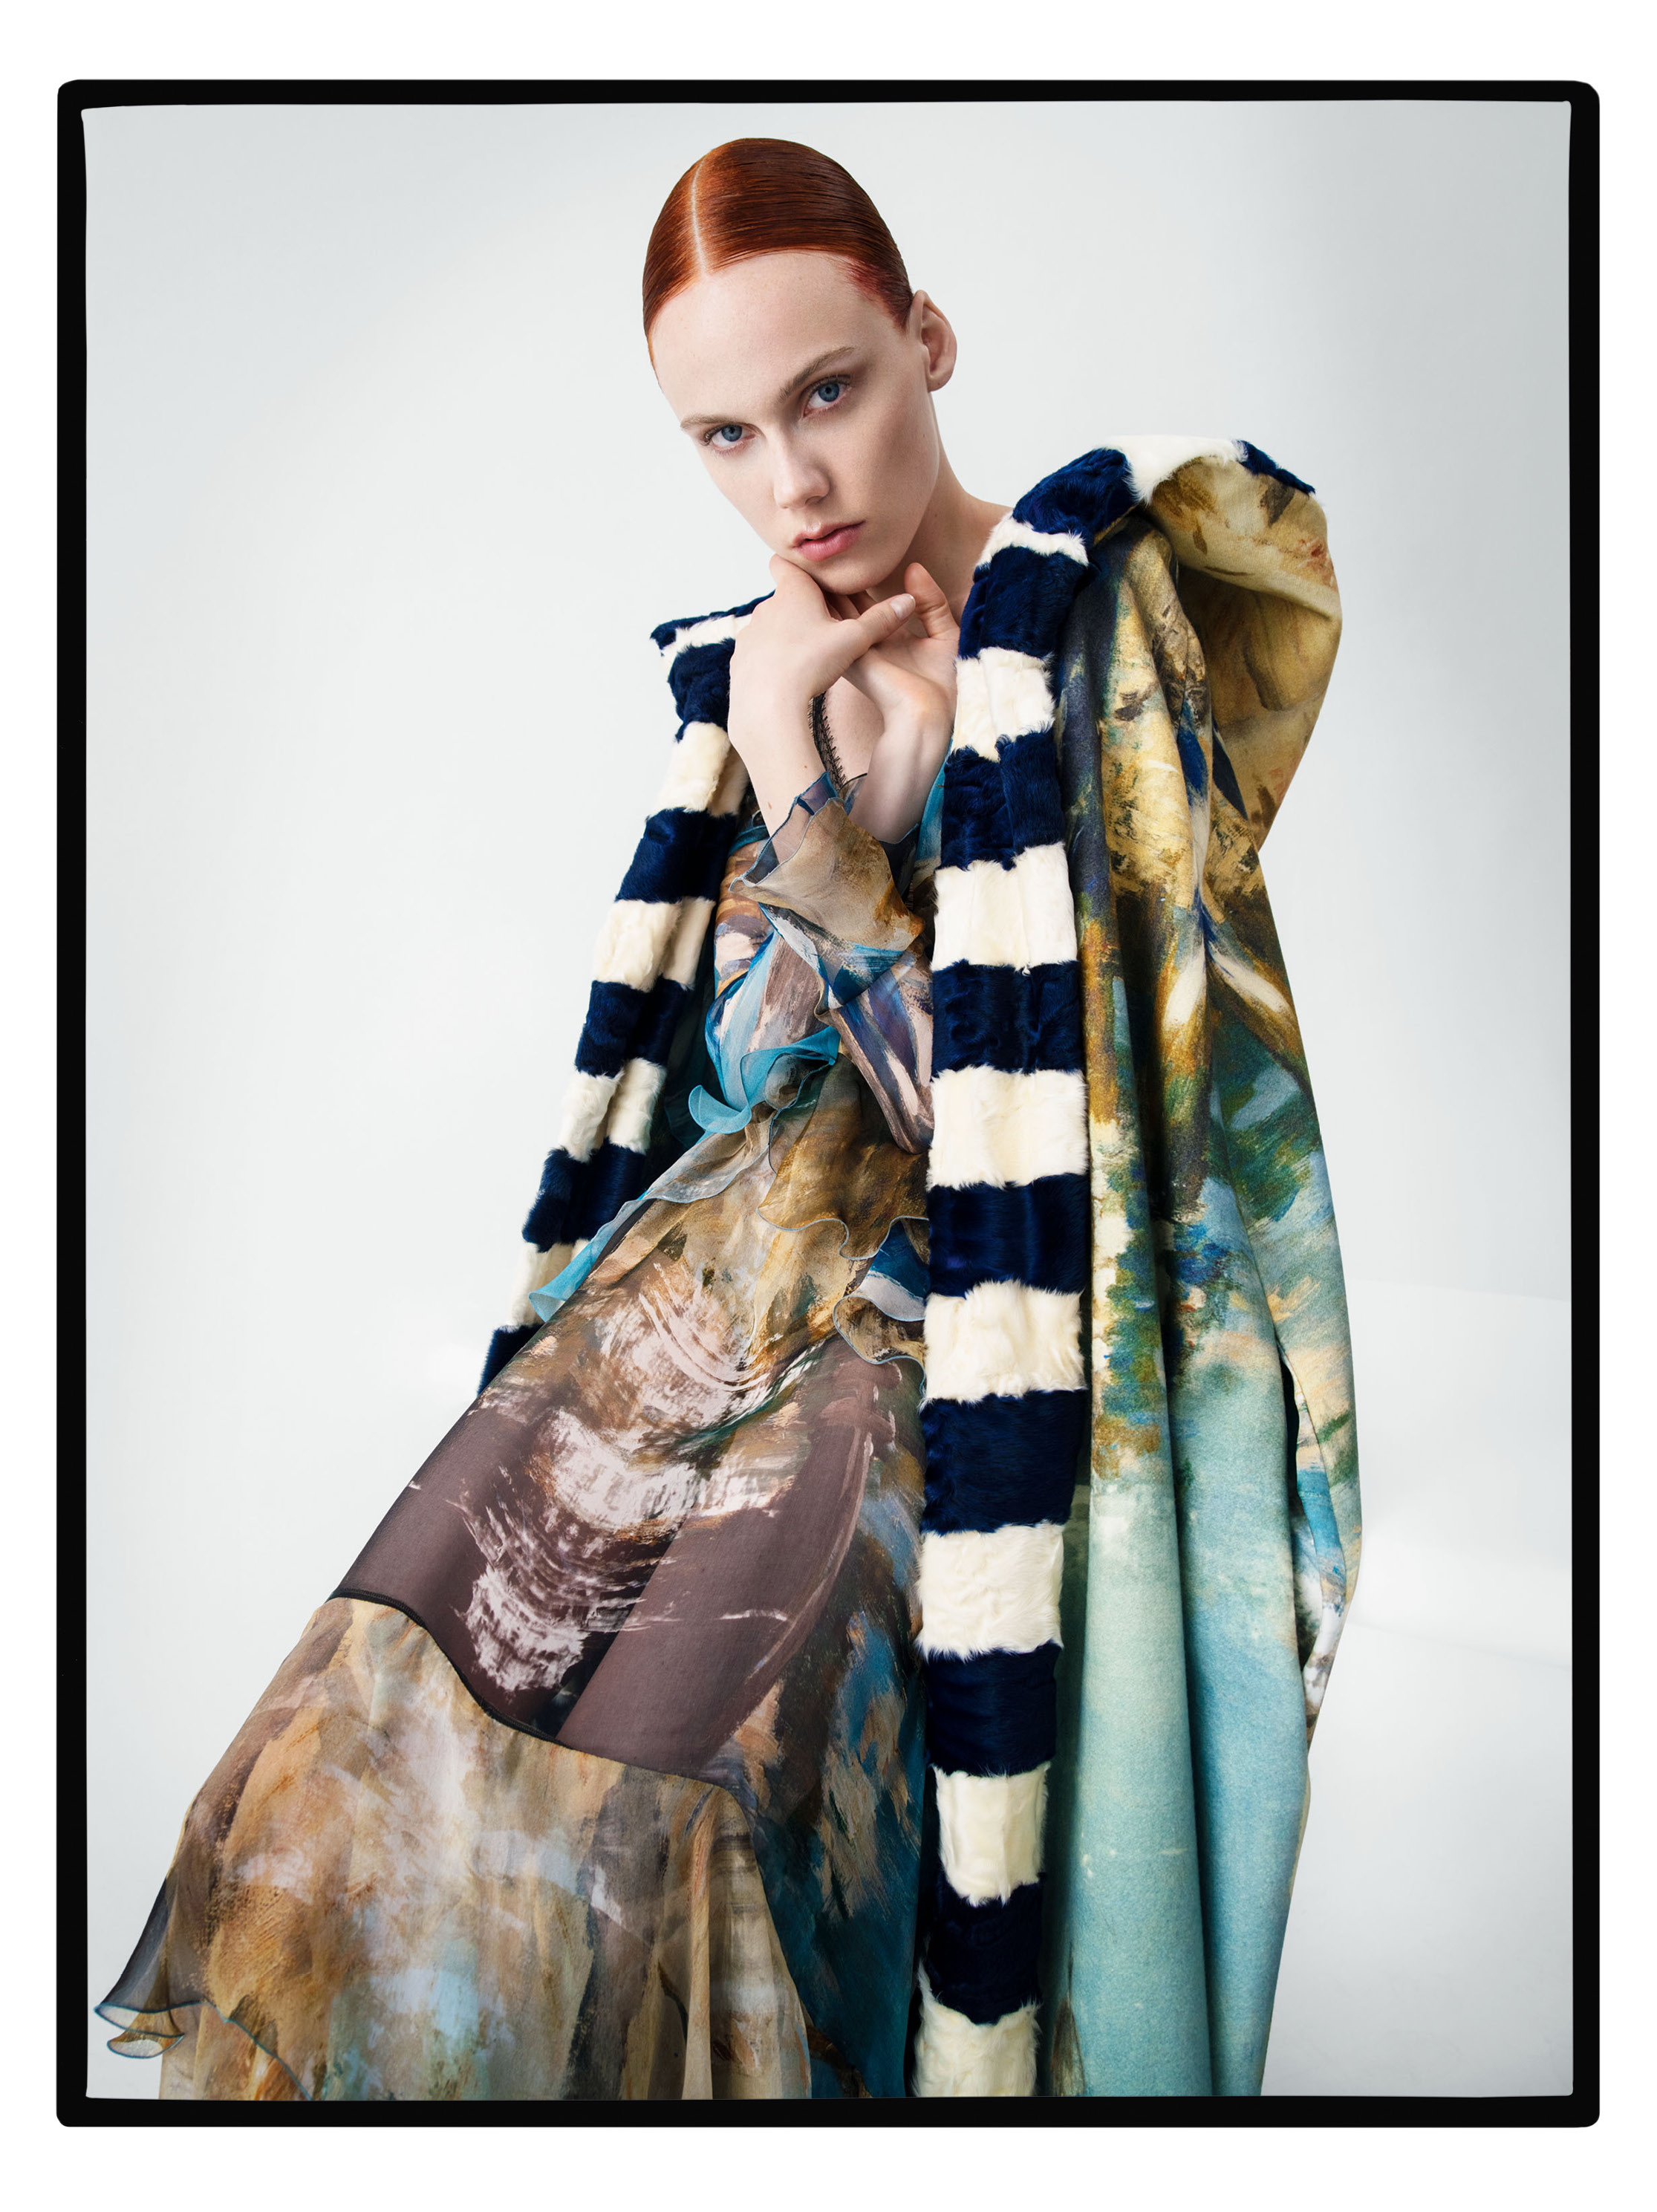 An image from the fall ad campaign by Tim Walker for Alberta Ferretti.